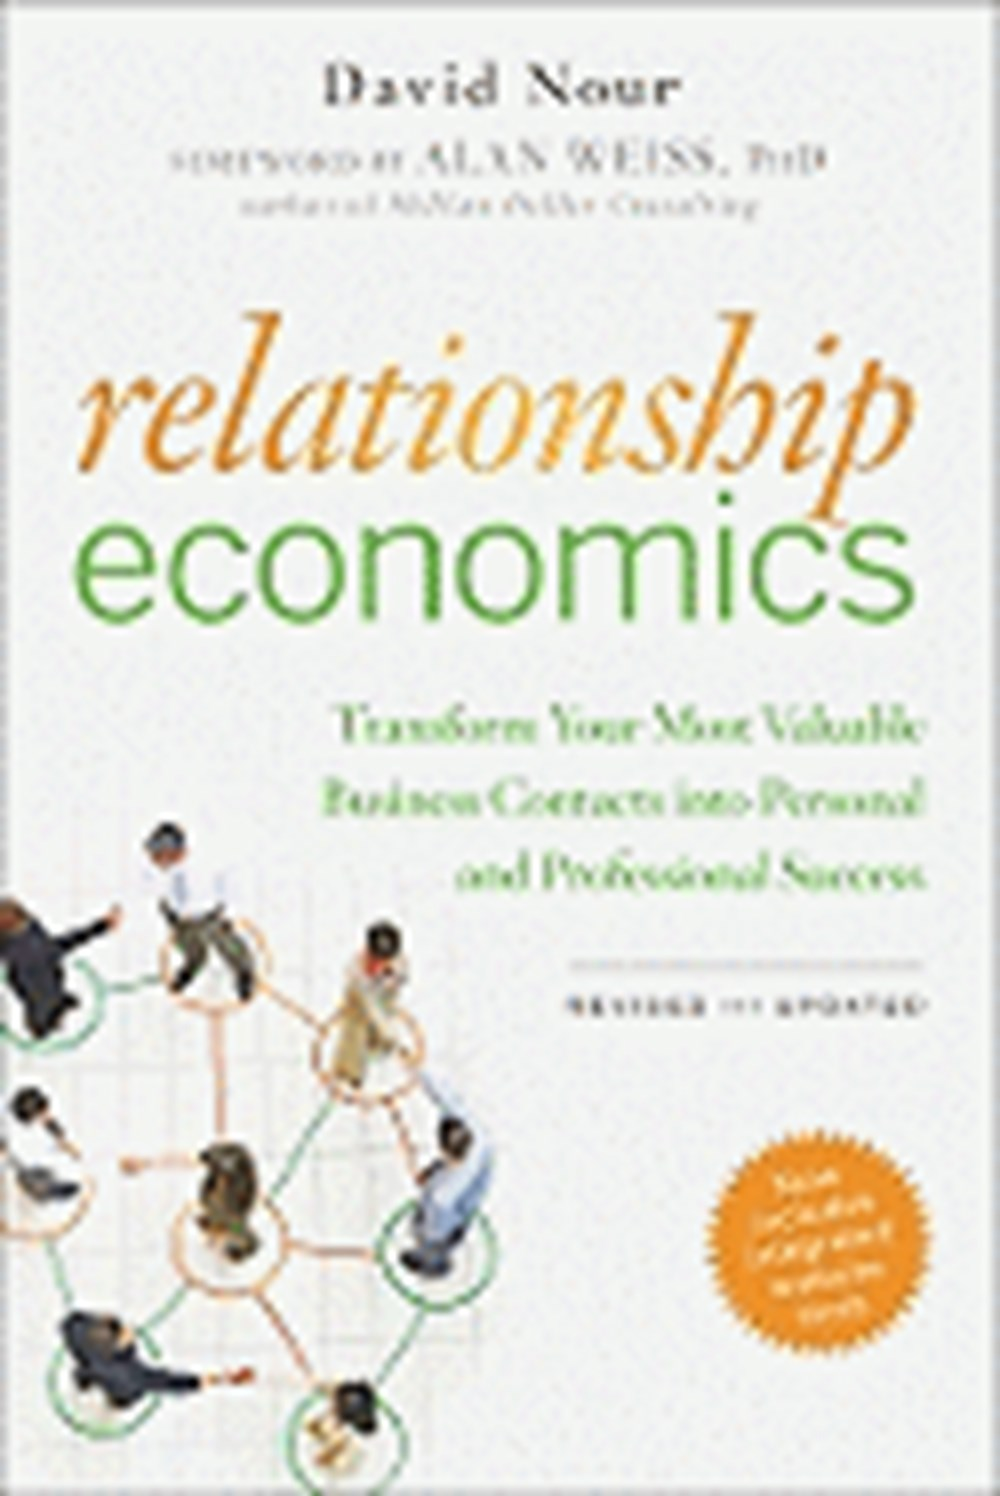 Relationship Economics Transform Your Most Valuable Business Contacts Into Personal and Professional